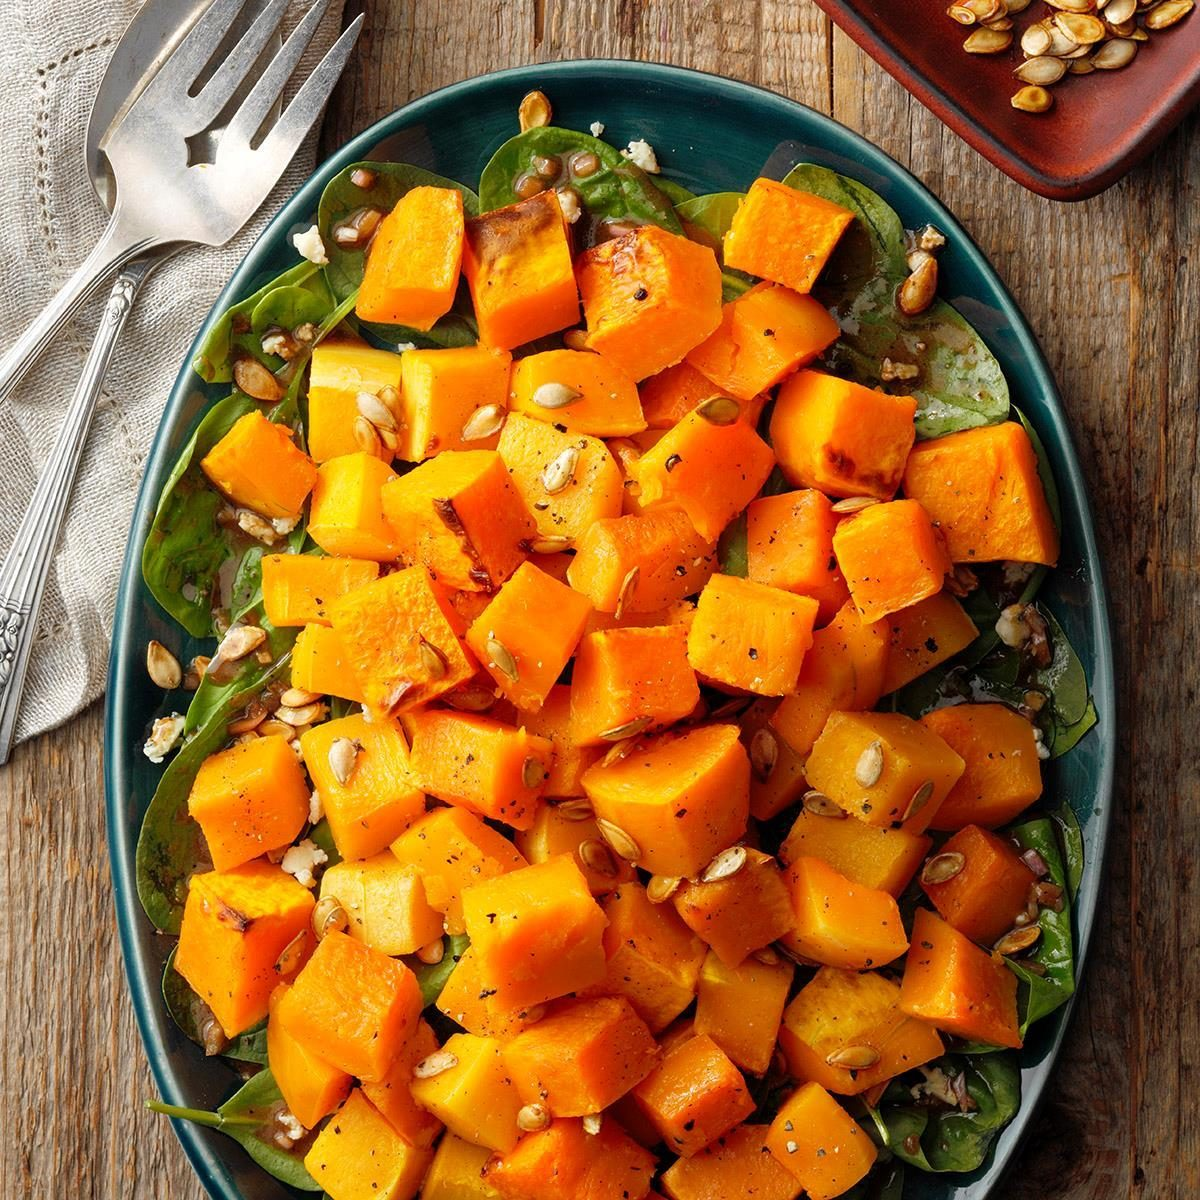 California: Roasted Butternut Squash Salad with Caramelized Pumpkin Seeds